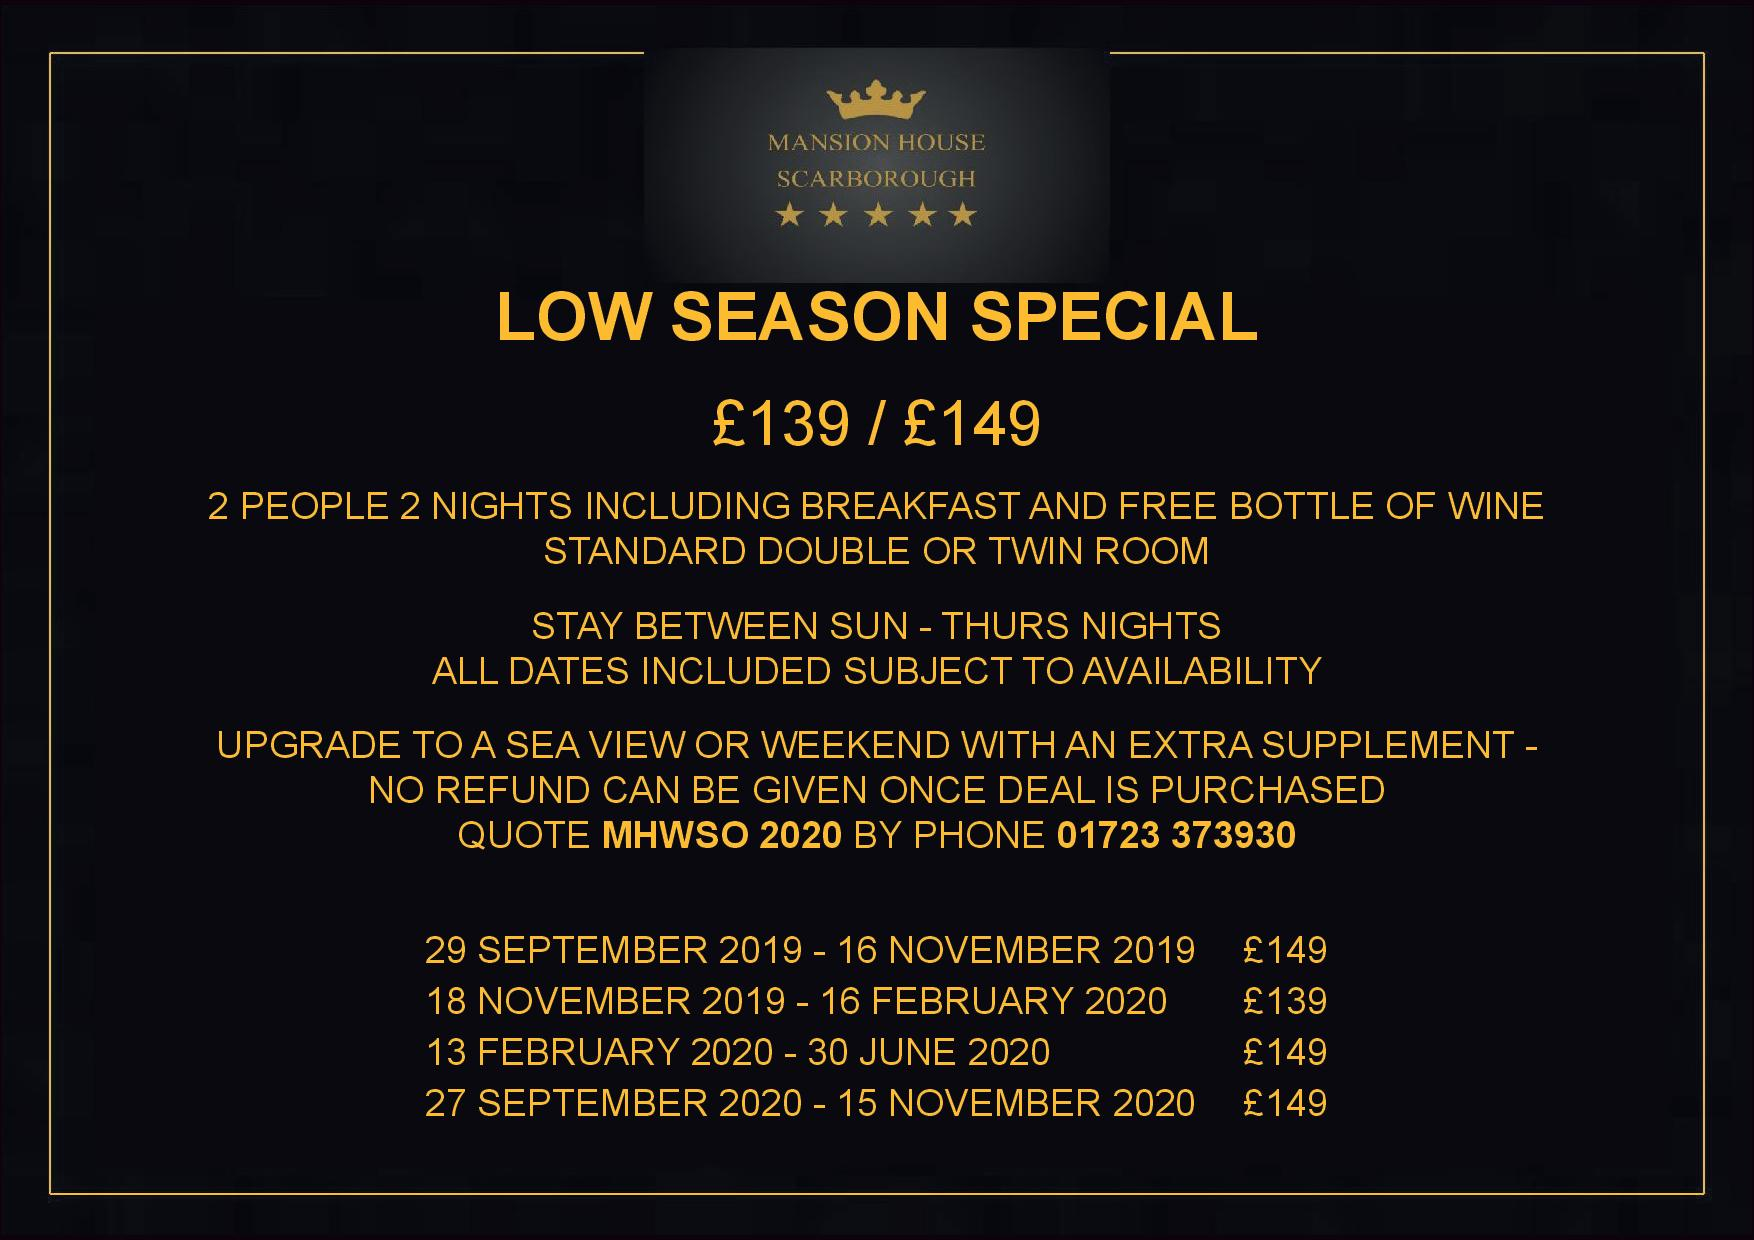 Low Season Special Offer